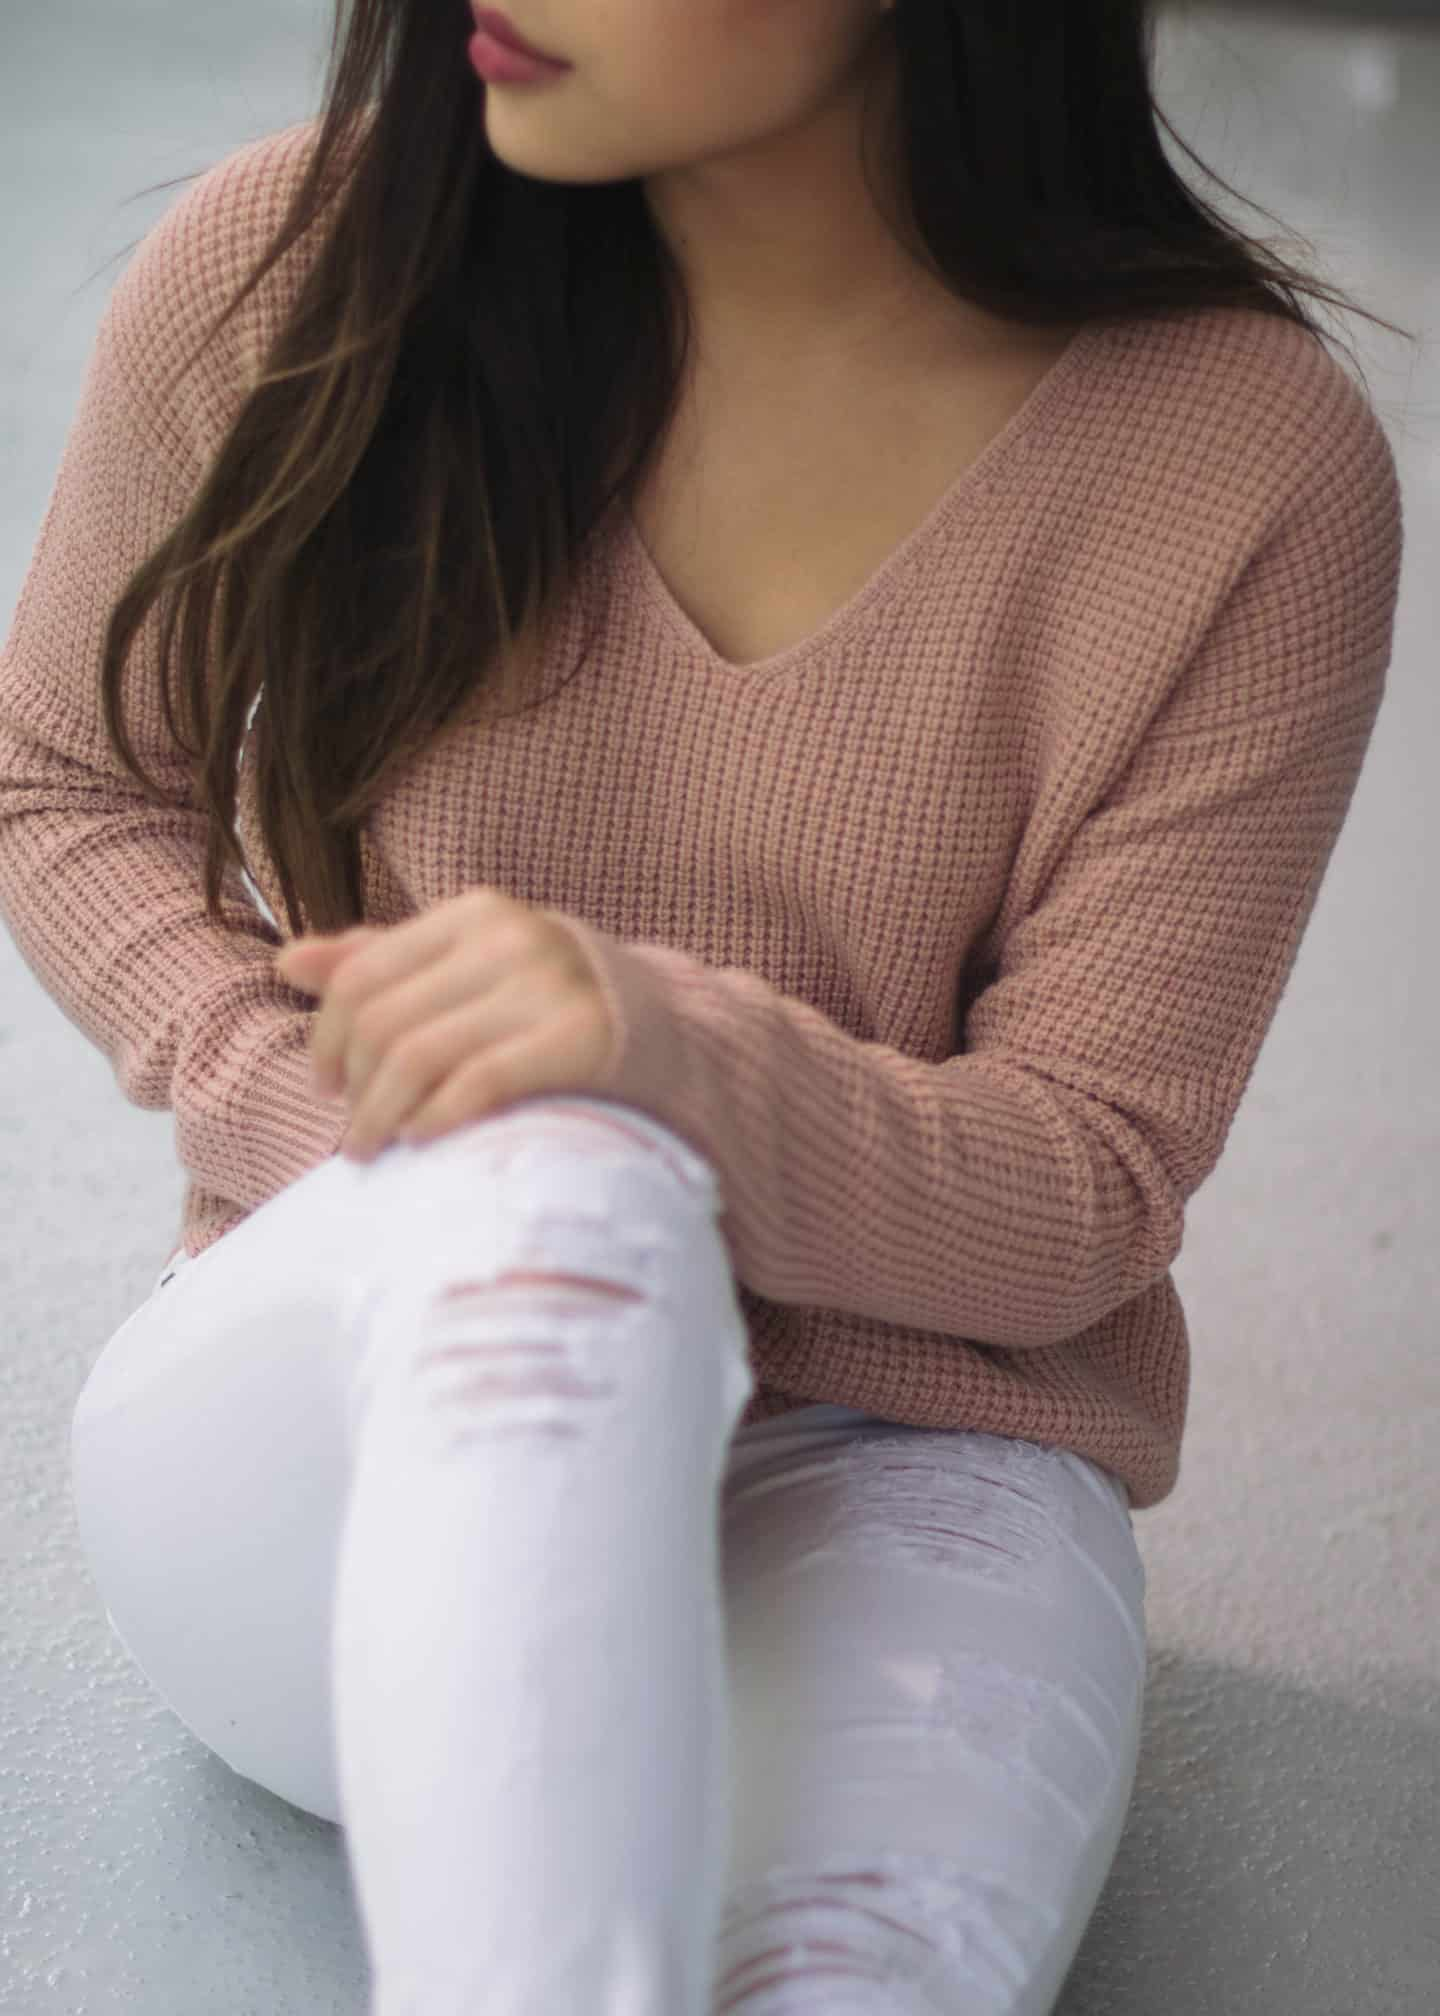 Summer to fall transitional outfit featuring Aritzia pink knit sweater and Guess white distressed jeans